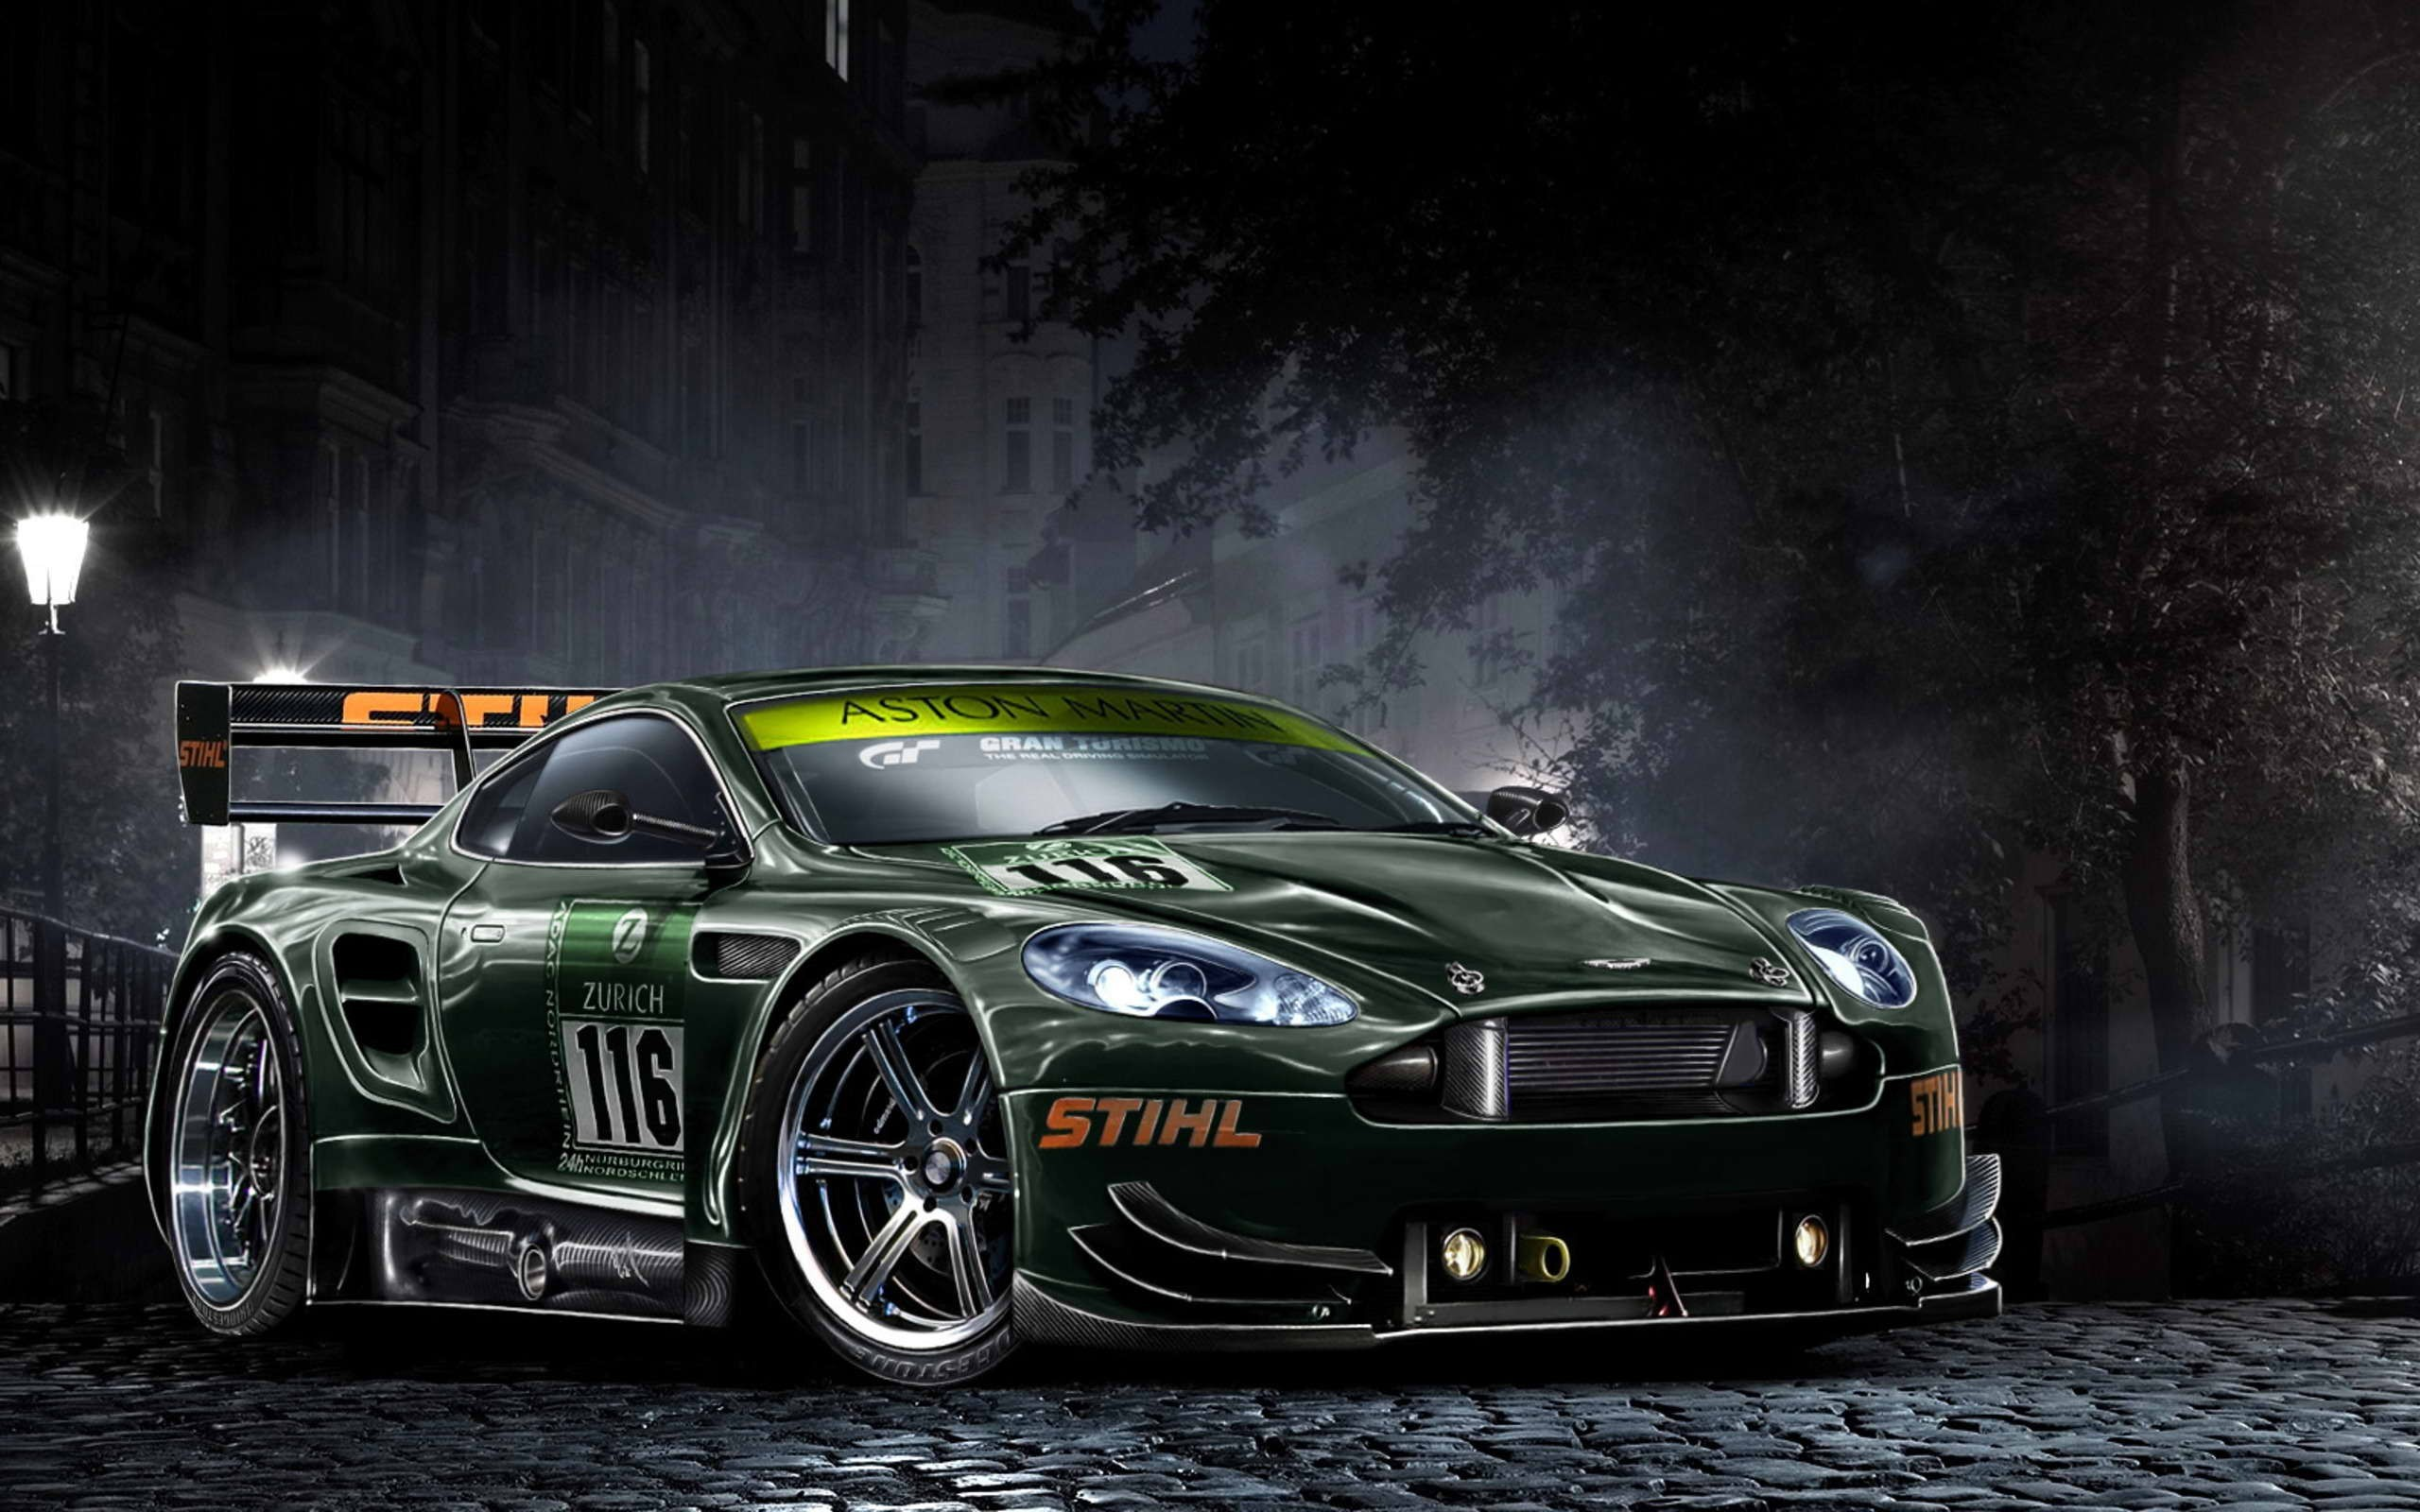 2560x1600 Street Racing Cars Wallpaper for Gadgets